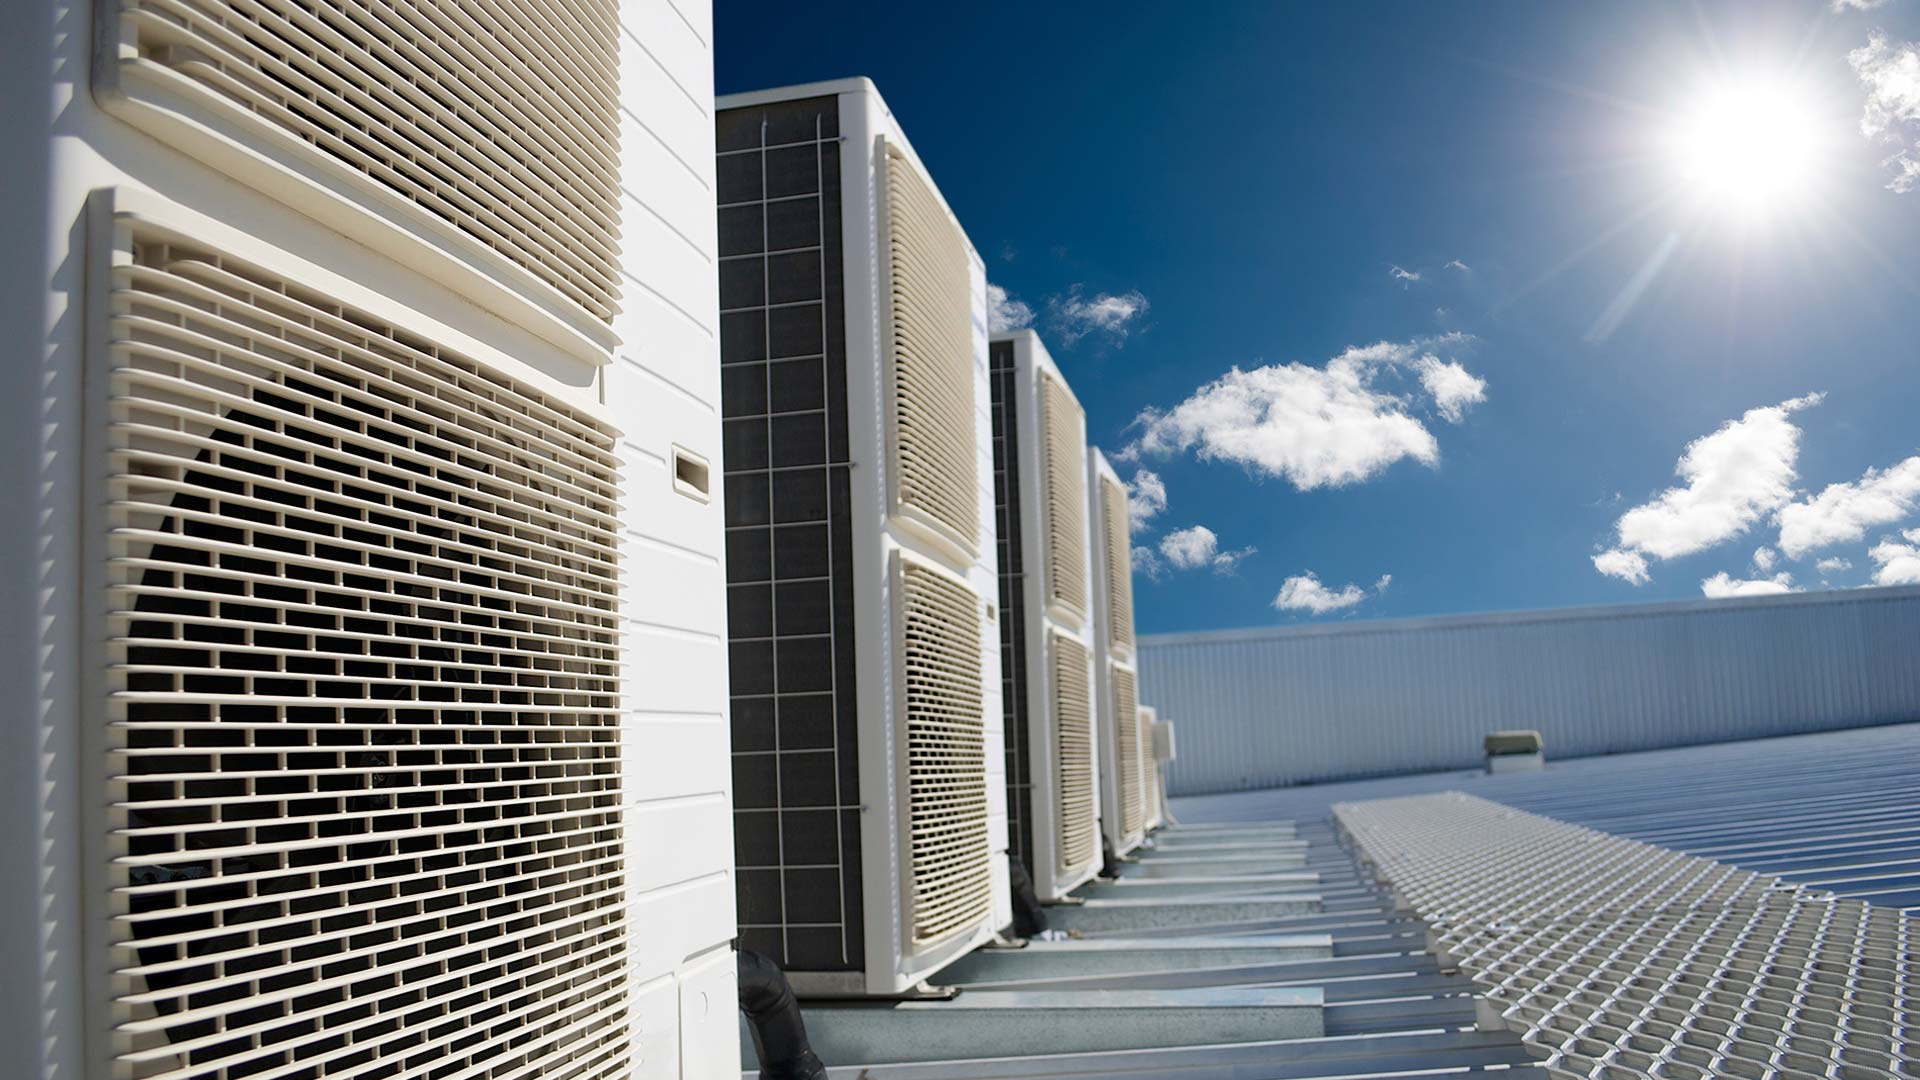 Commercial ac units on rooftop under blue sky